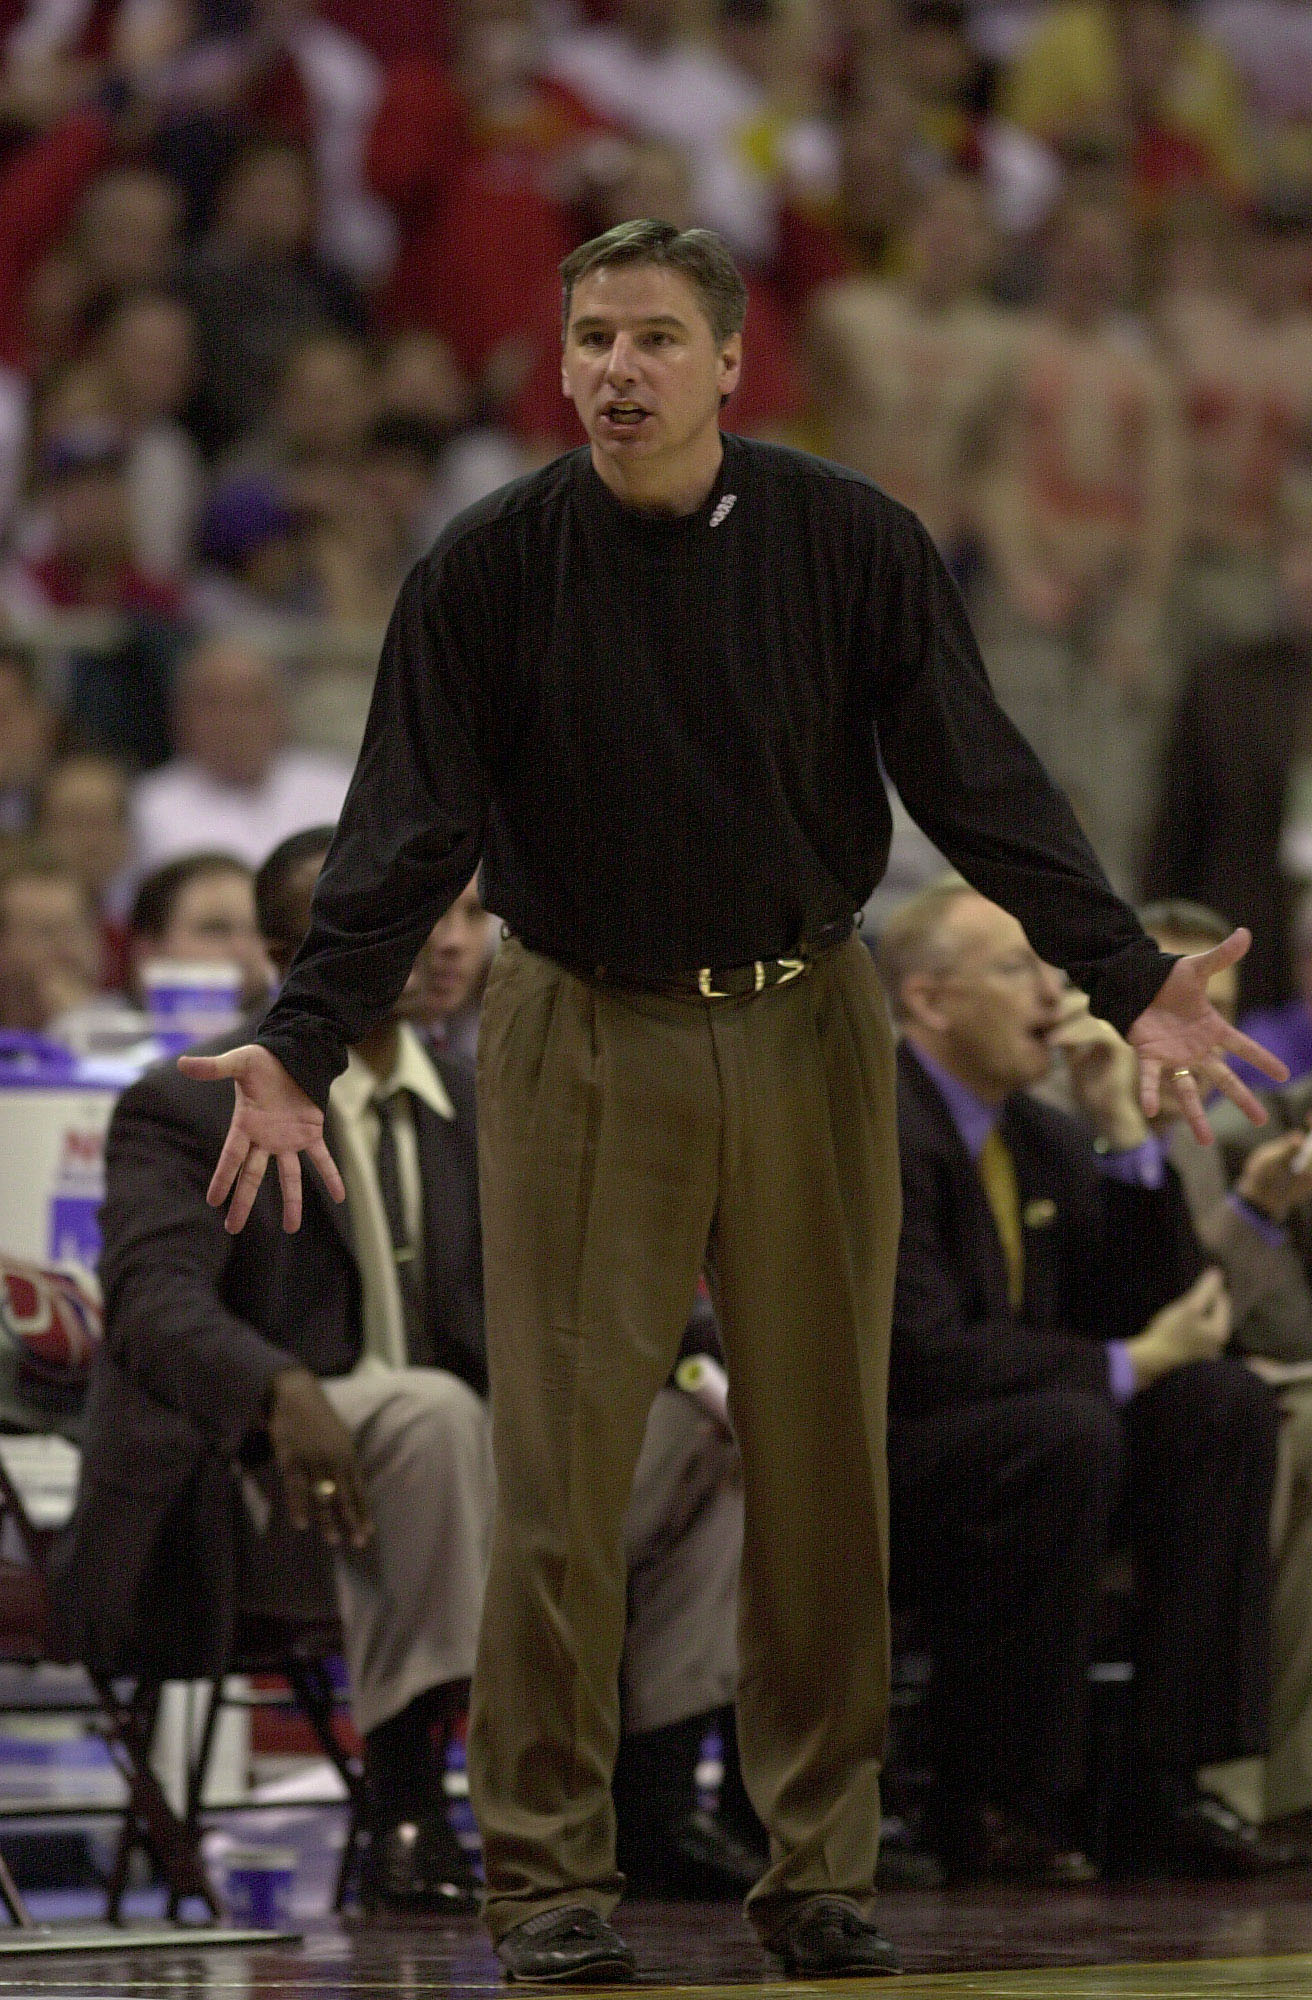 18 Mar 2000: Iowa St head coach Larry Eustachy directs his players during the game against Auburn during the Second Round of the NCAA Midwest Regional at the Hubert H. Humphrey Metrodome in Minneapolis, Minnesota. Iowa State won 79-60. DIGITAL IMAGE.